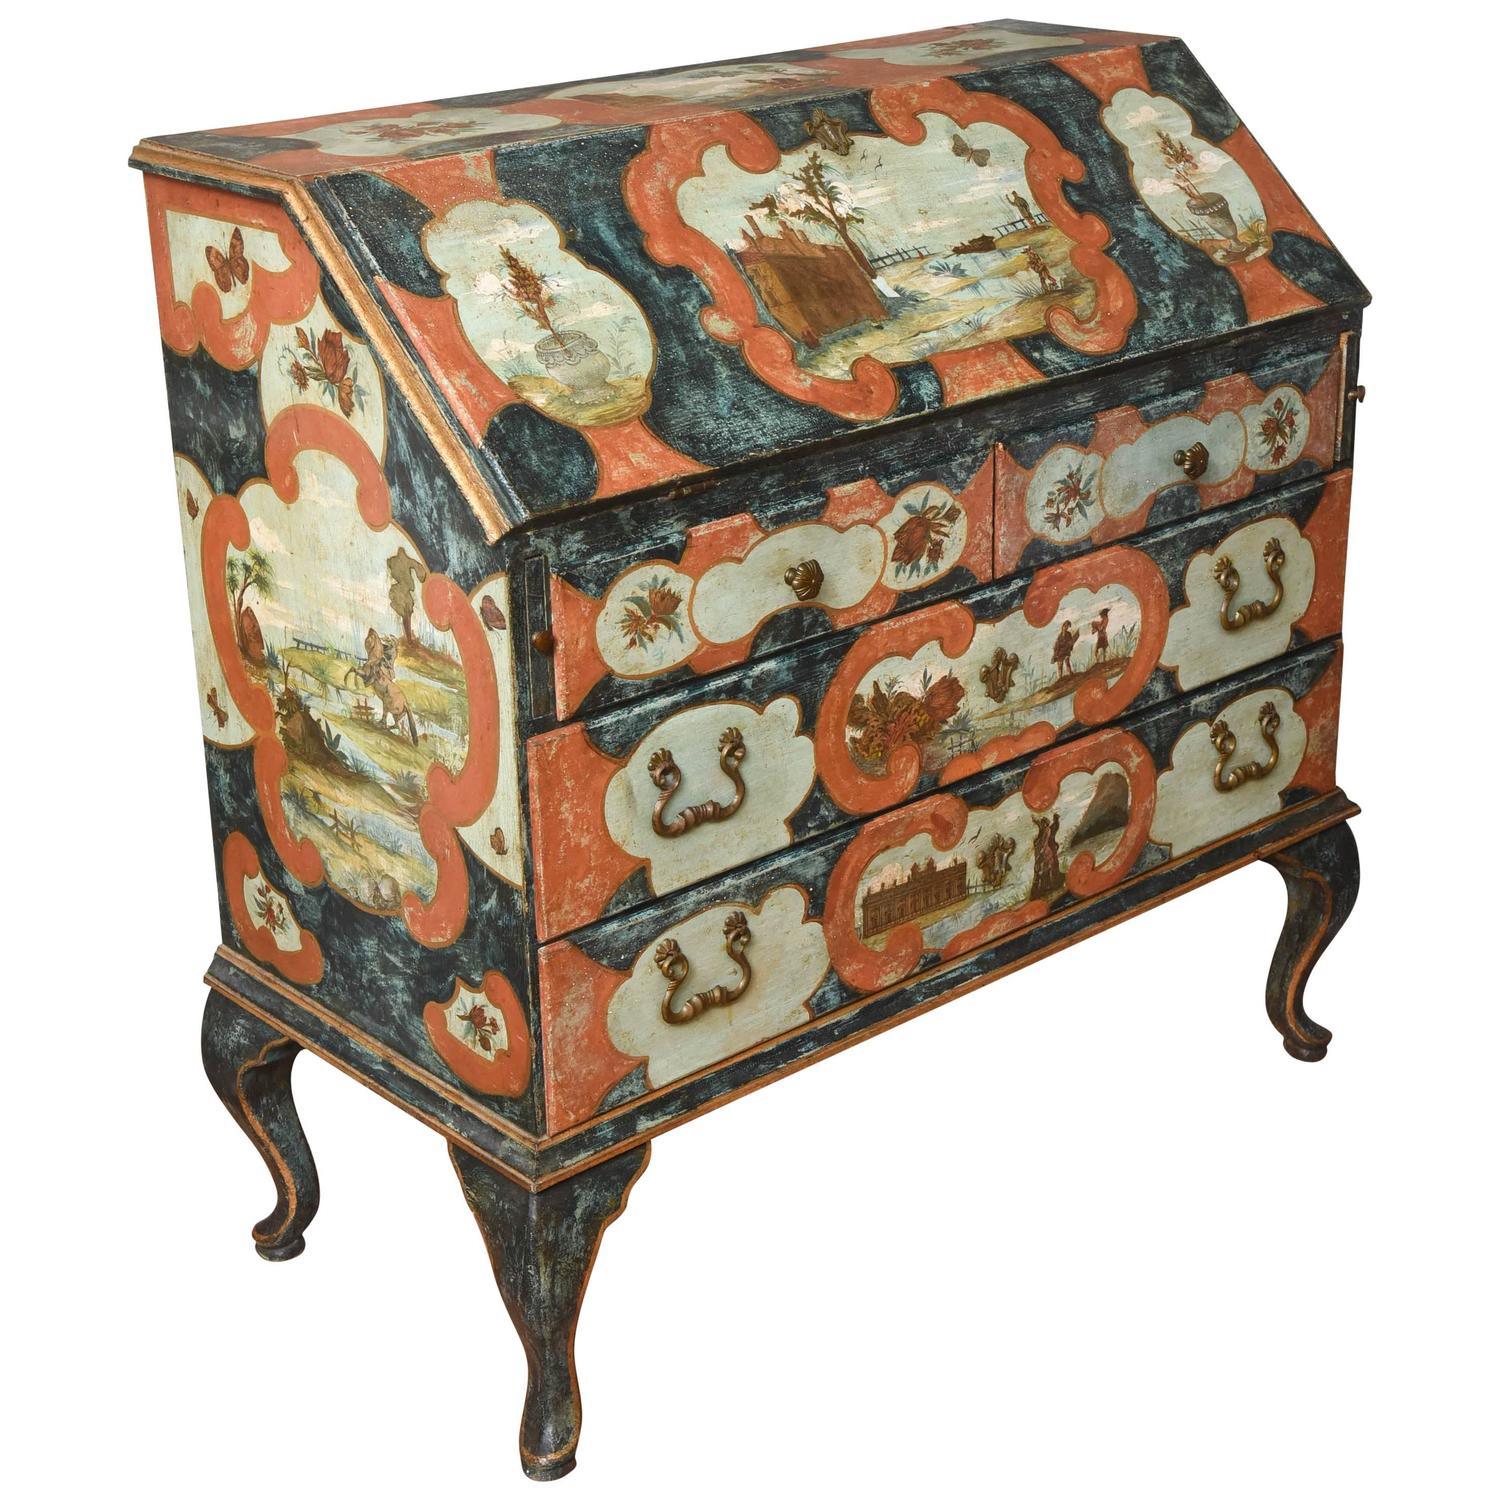 Italian painted and decoupage secretaire at 1stdibs for Italian painted furniture